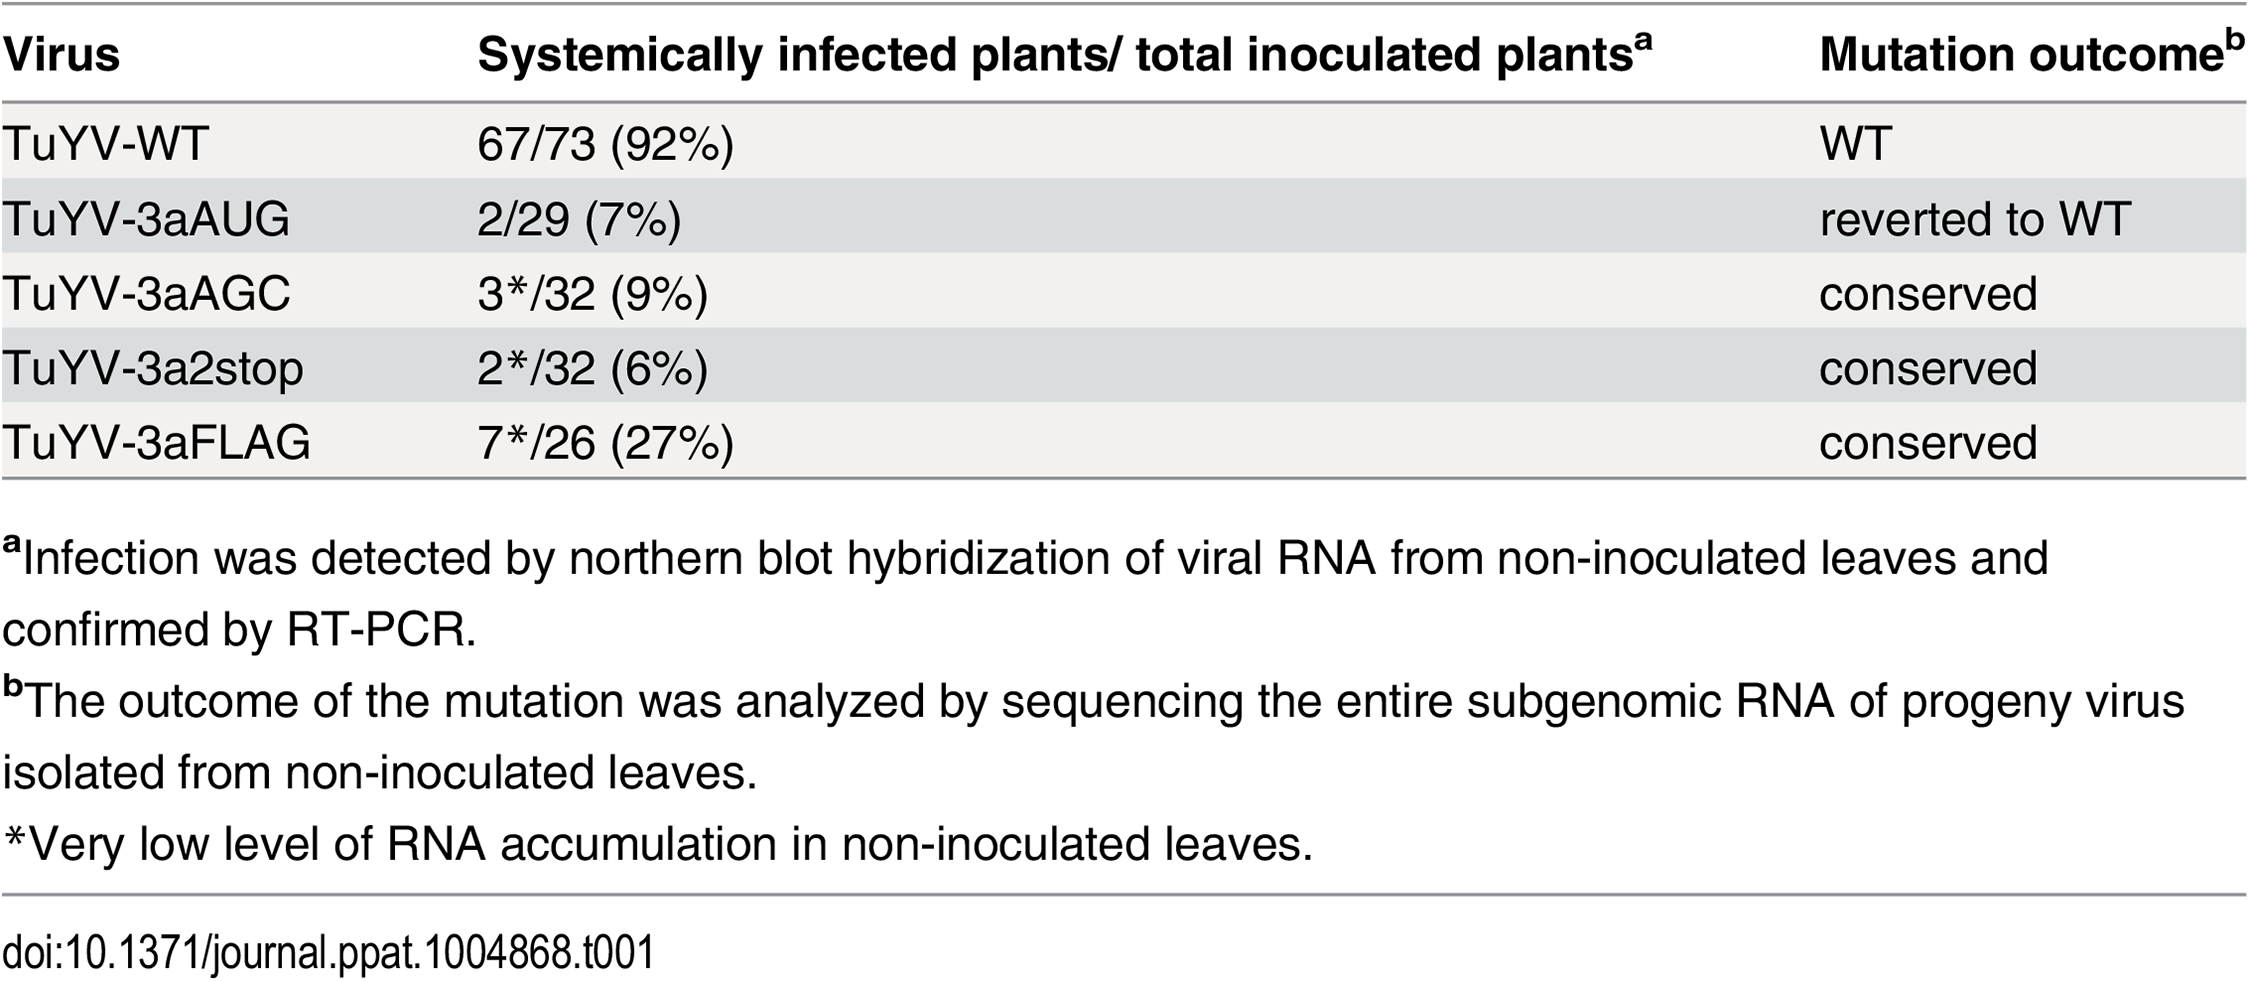 Systemic infection by TuYV containing P3a mutants.